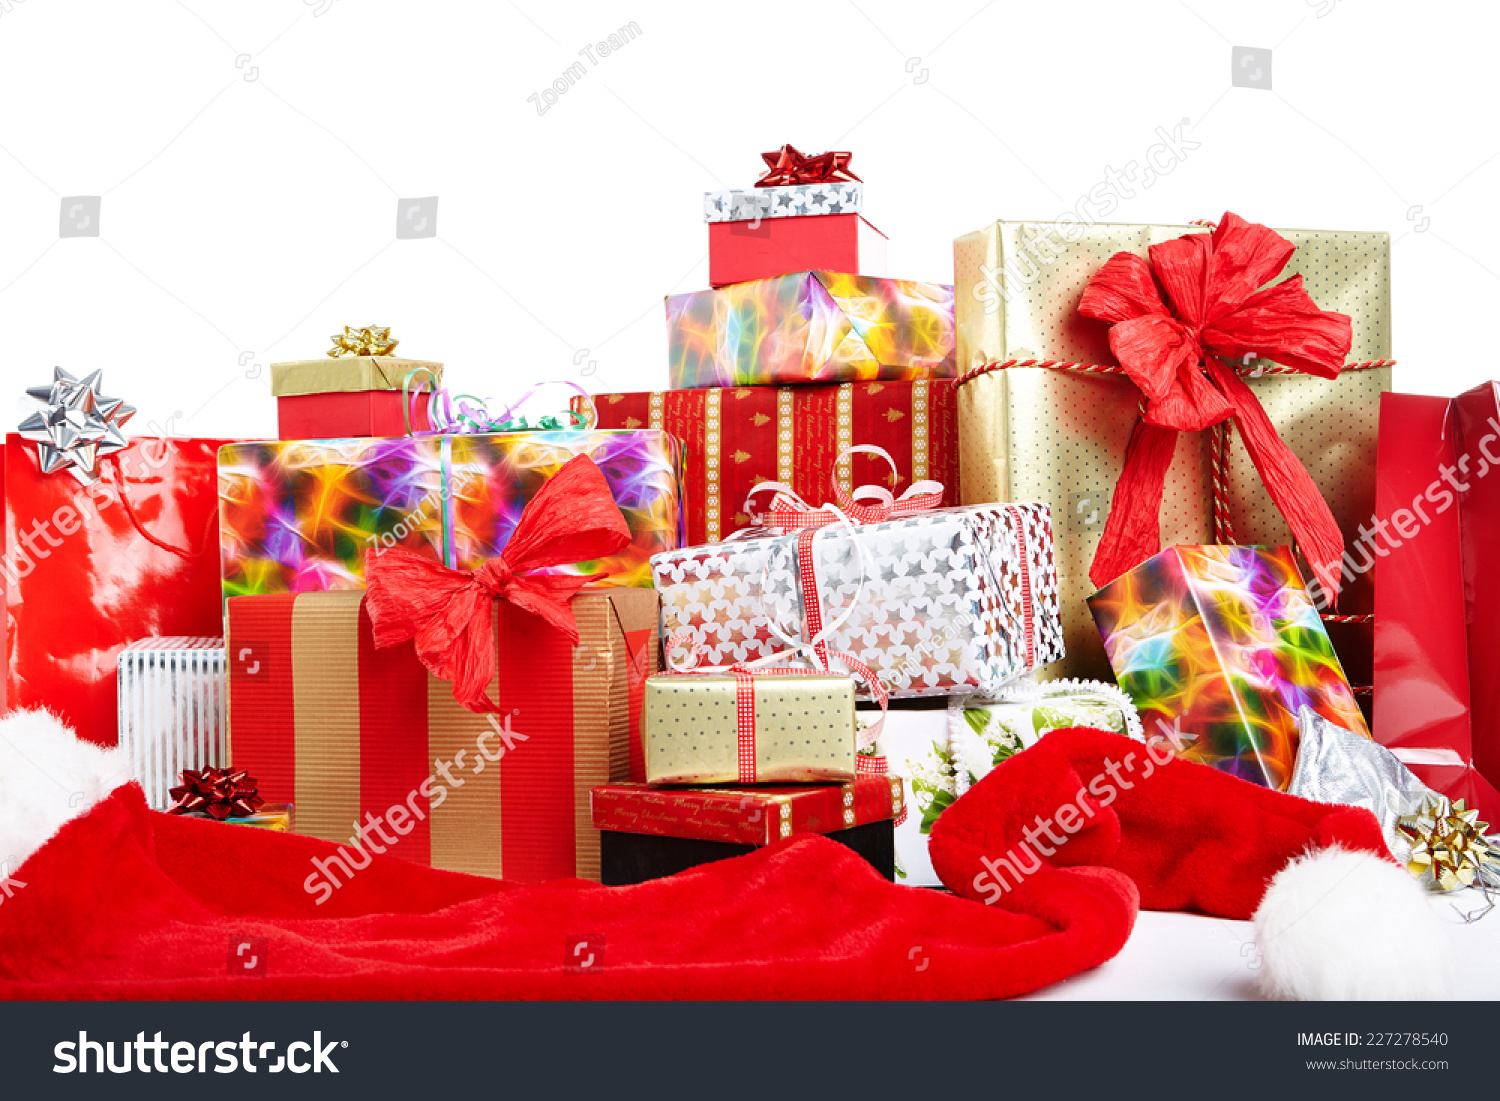 Pile Christmas Gifts Colorful Wrapping Ribbons Stock Photo (Edit Now ...